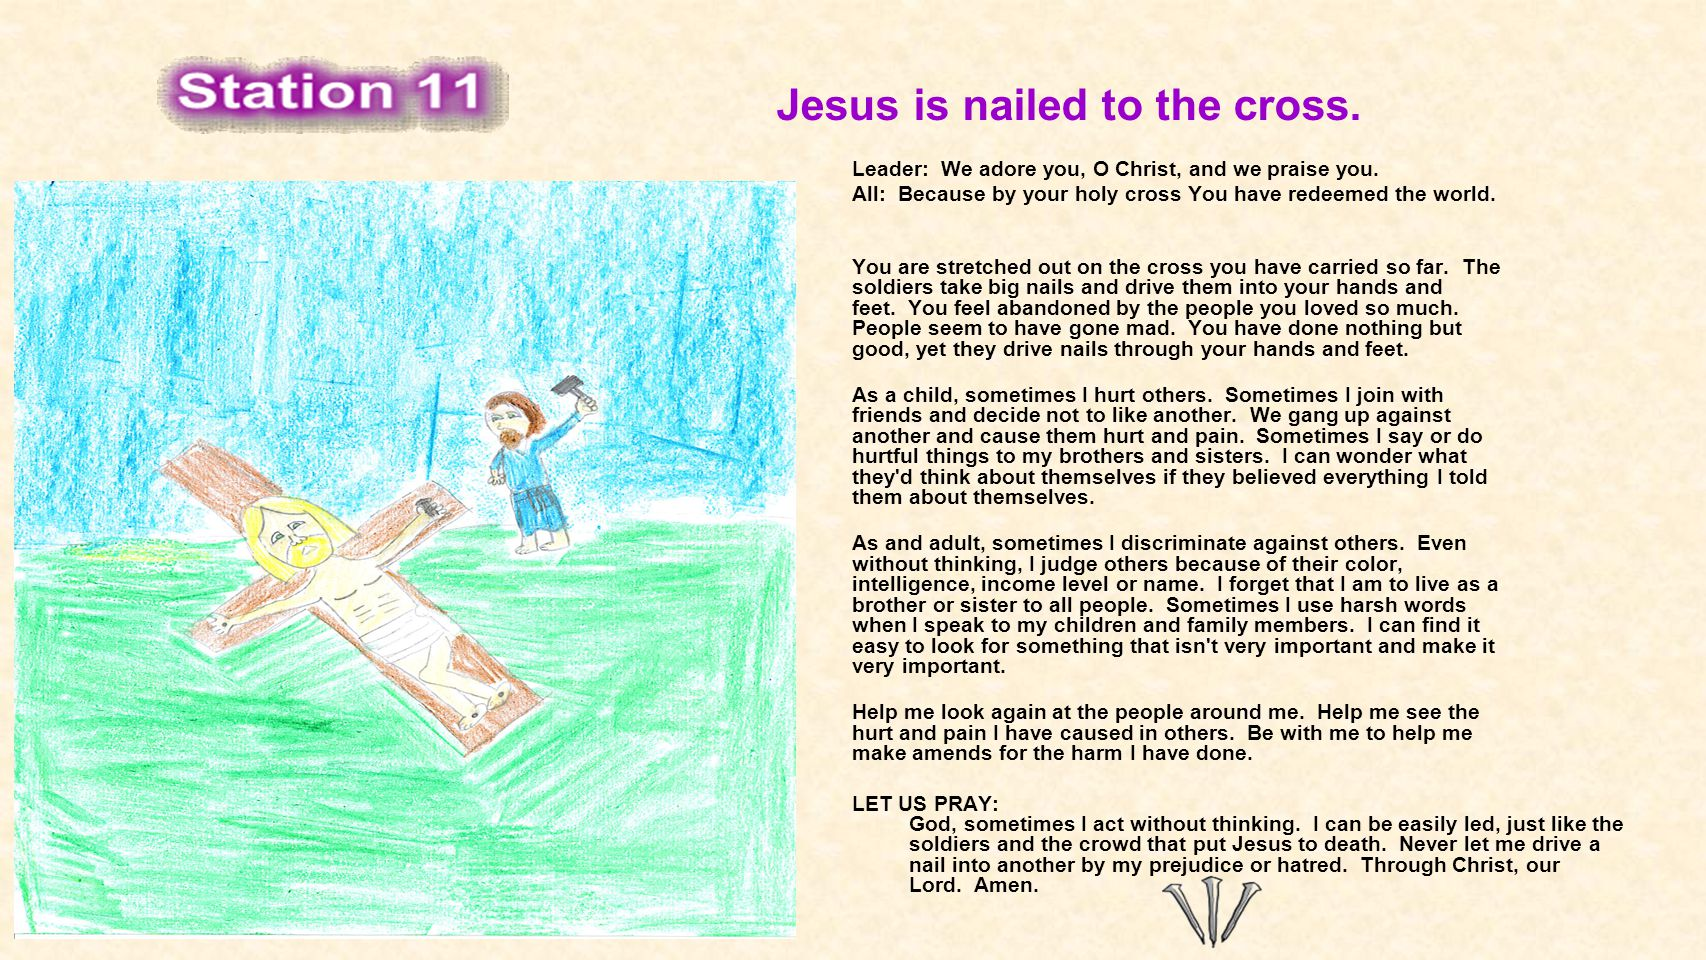 Jesus is nailed to the cross. Leader: We adore you, O Christ, and we praise you. All: Because by your holy cross You have redeemed the world. You are